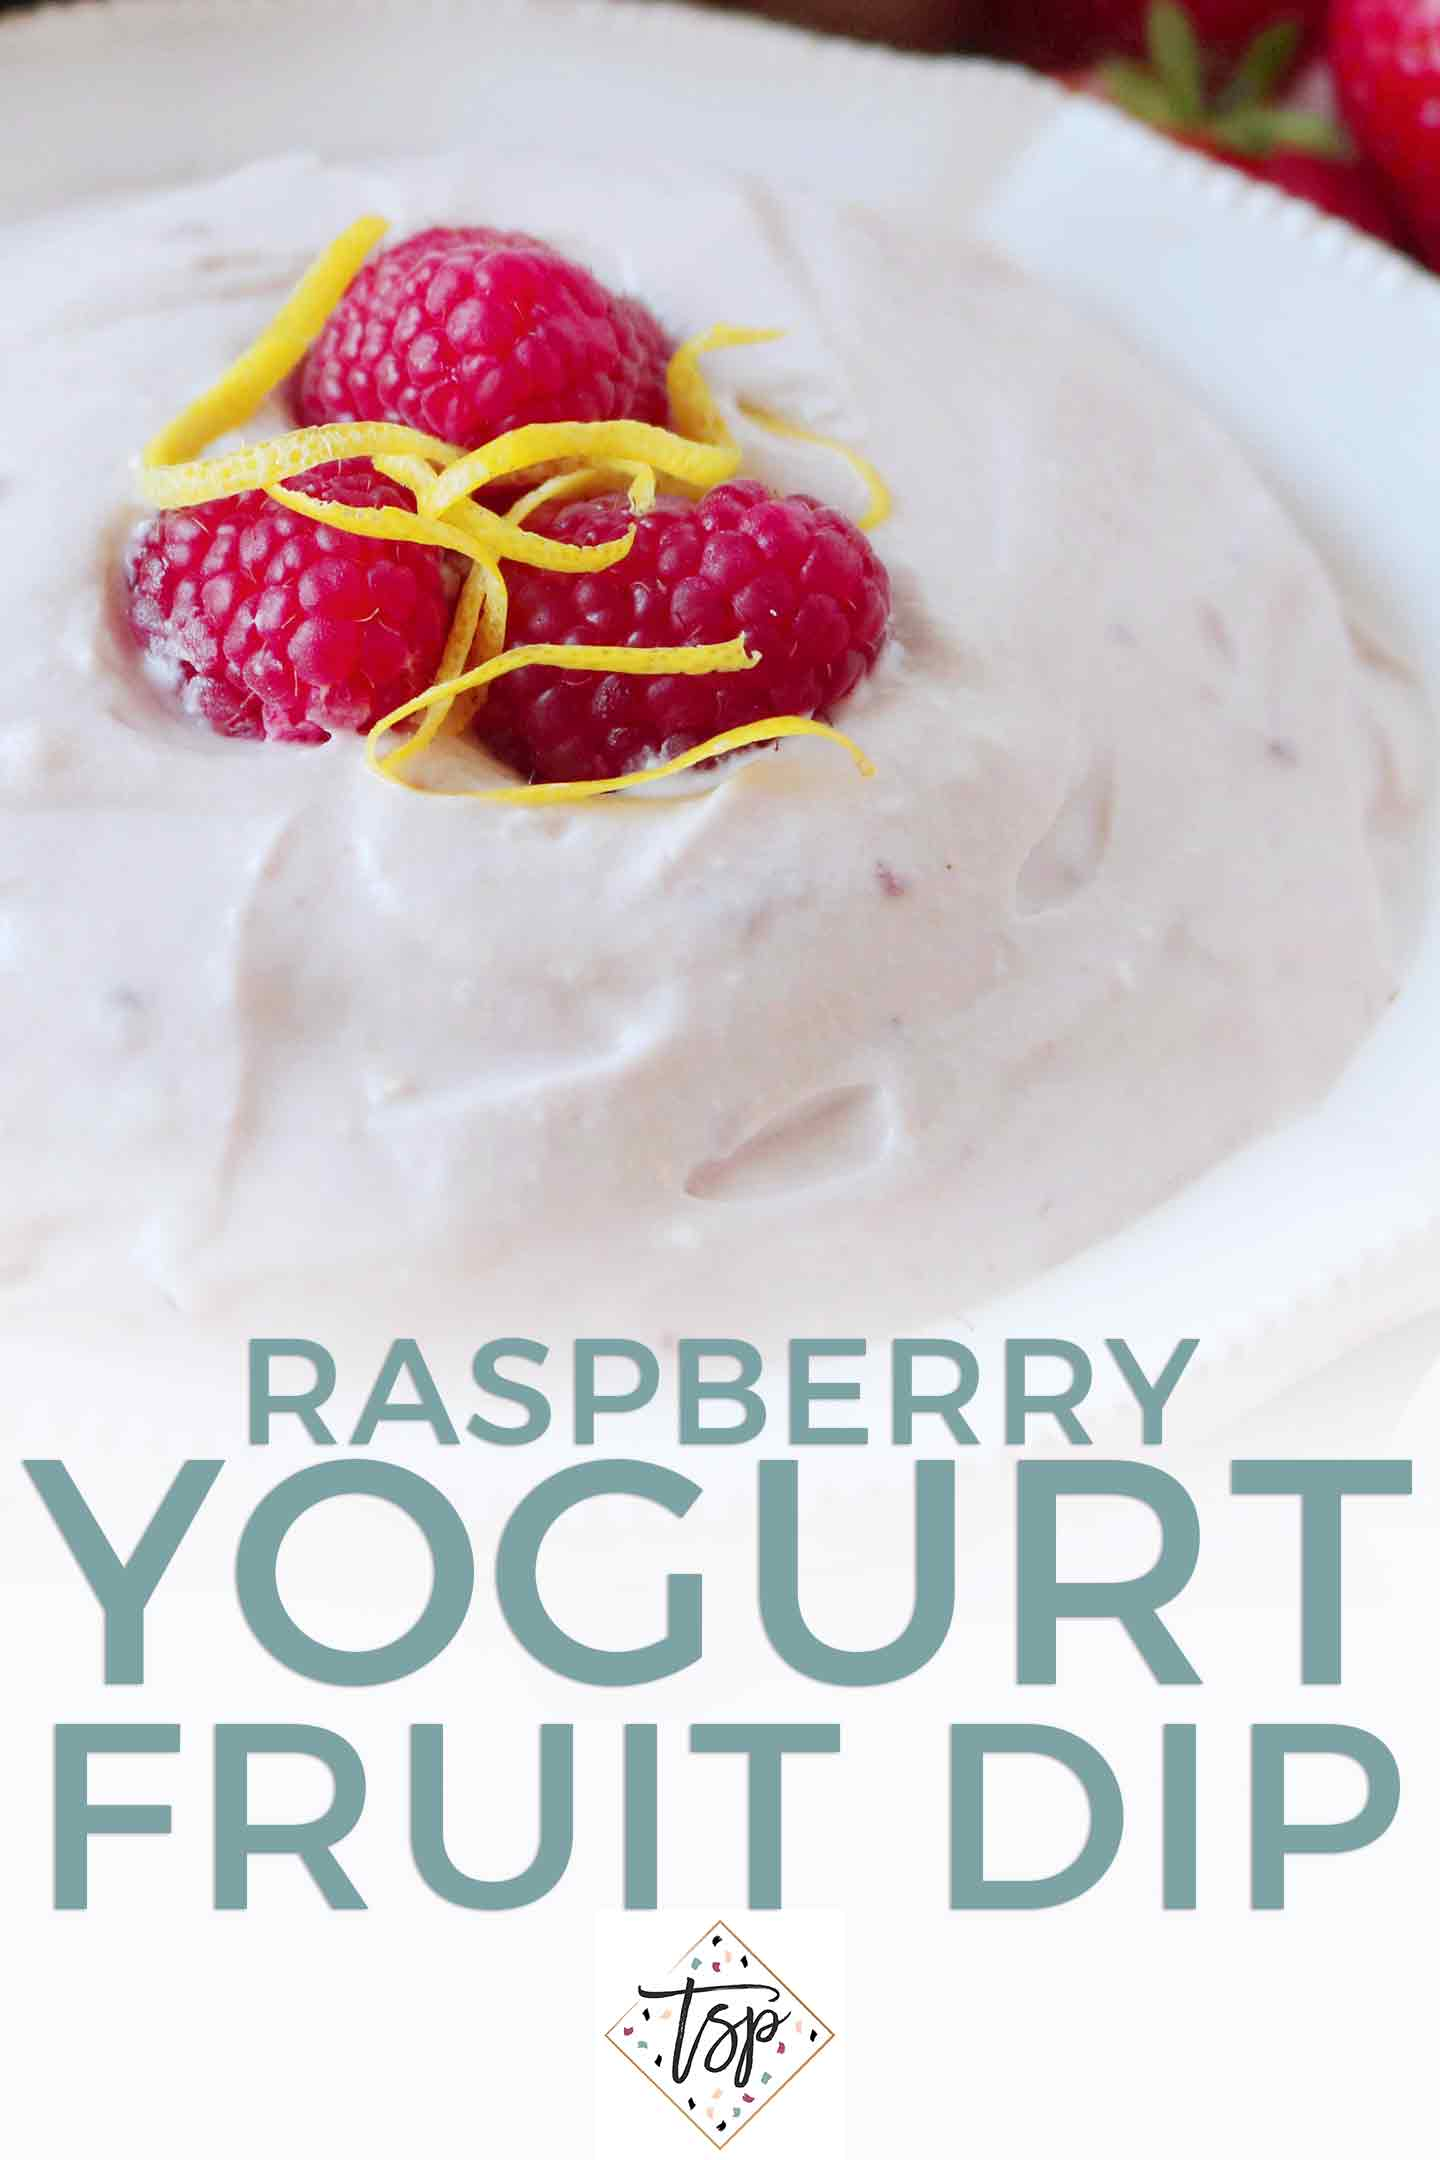 Pinterest image for Raspberry Yogurt Fruit Dip, featuring a close up of the dip, topped with raspberries and lemon zest